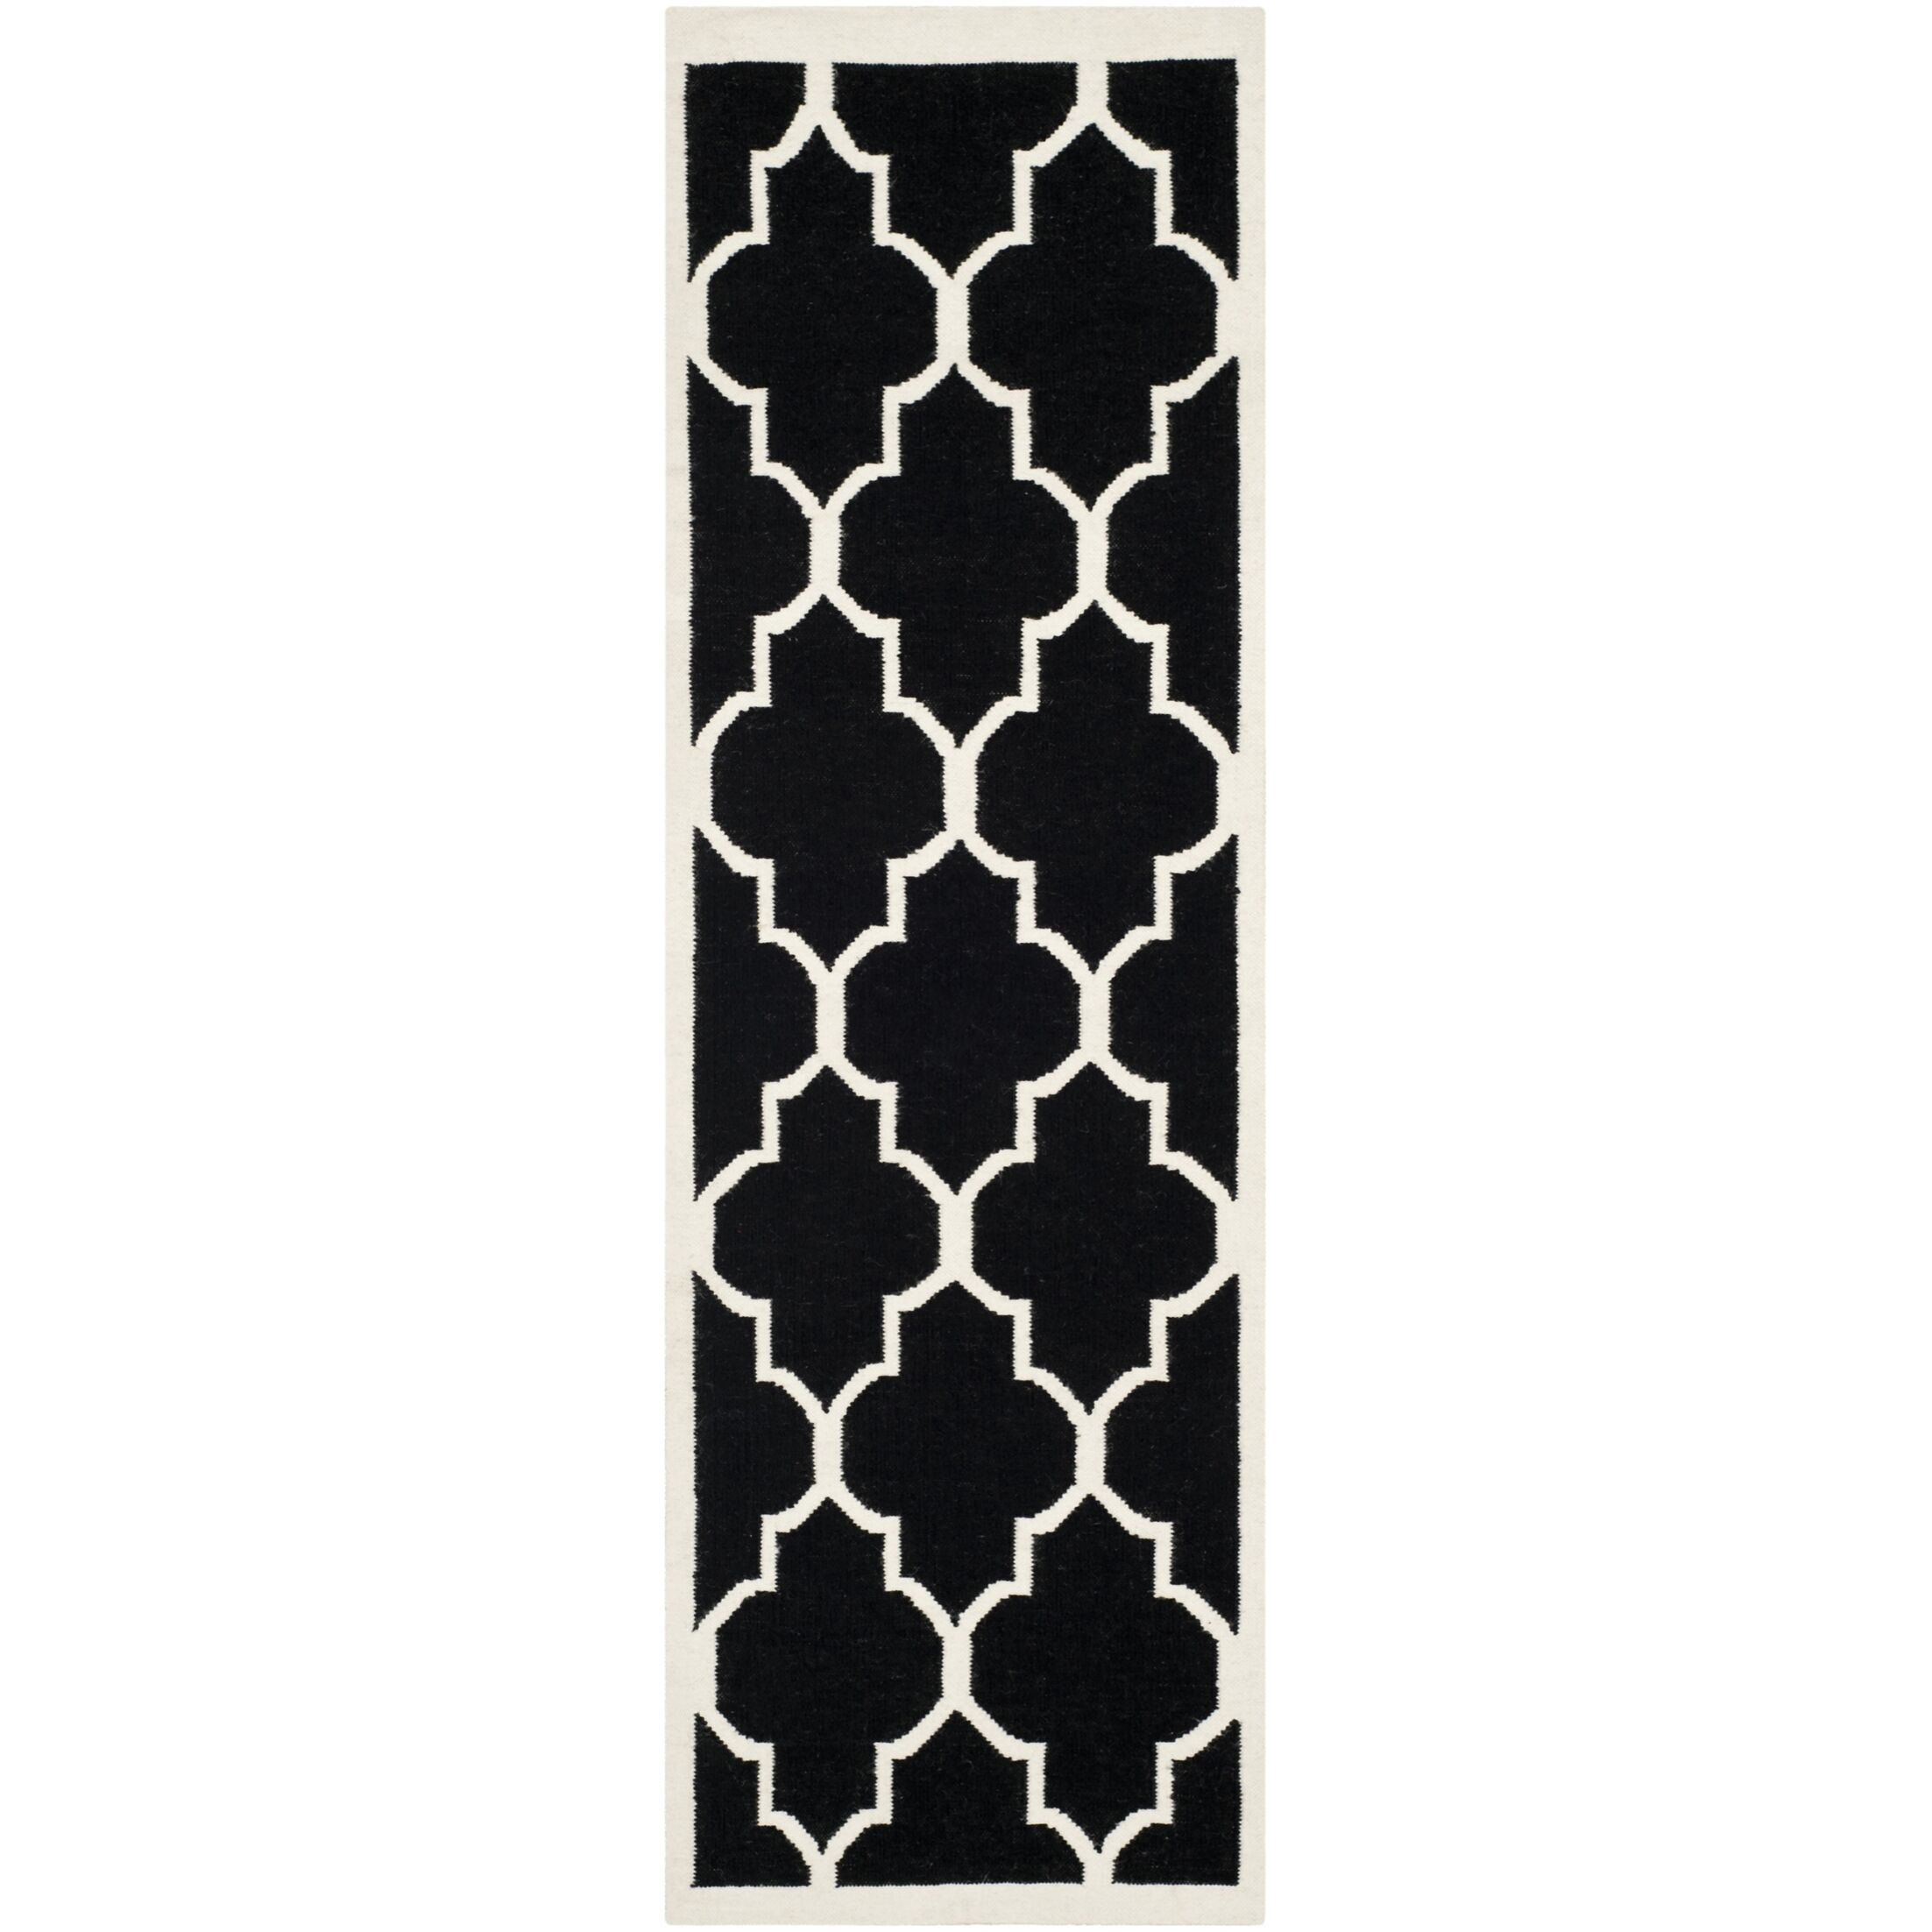 Dhurries Hand-Woven Wool Black/Ivory Area Rug Rug Size: Runner 2'6